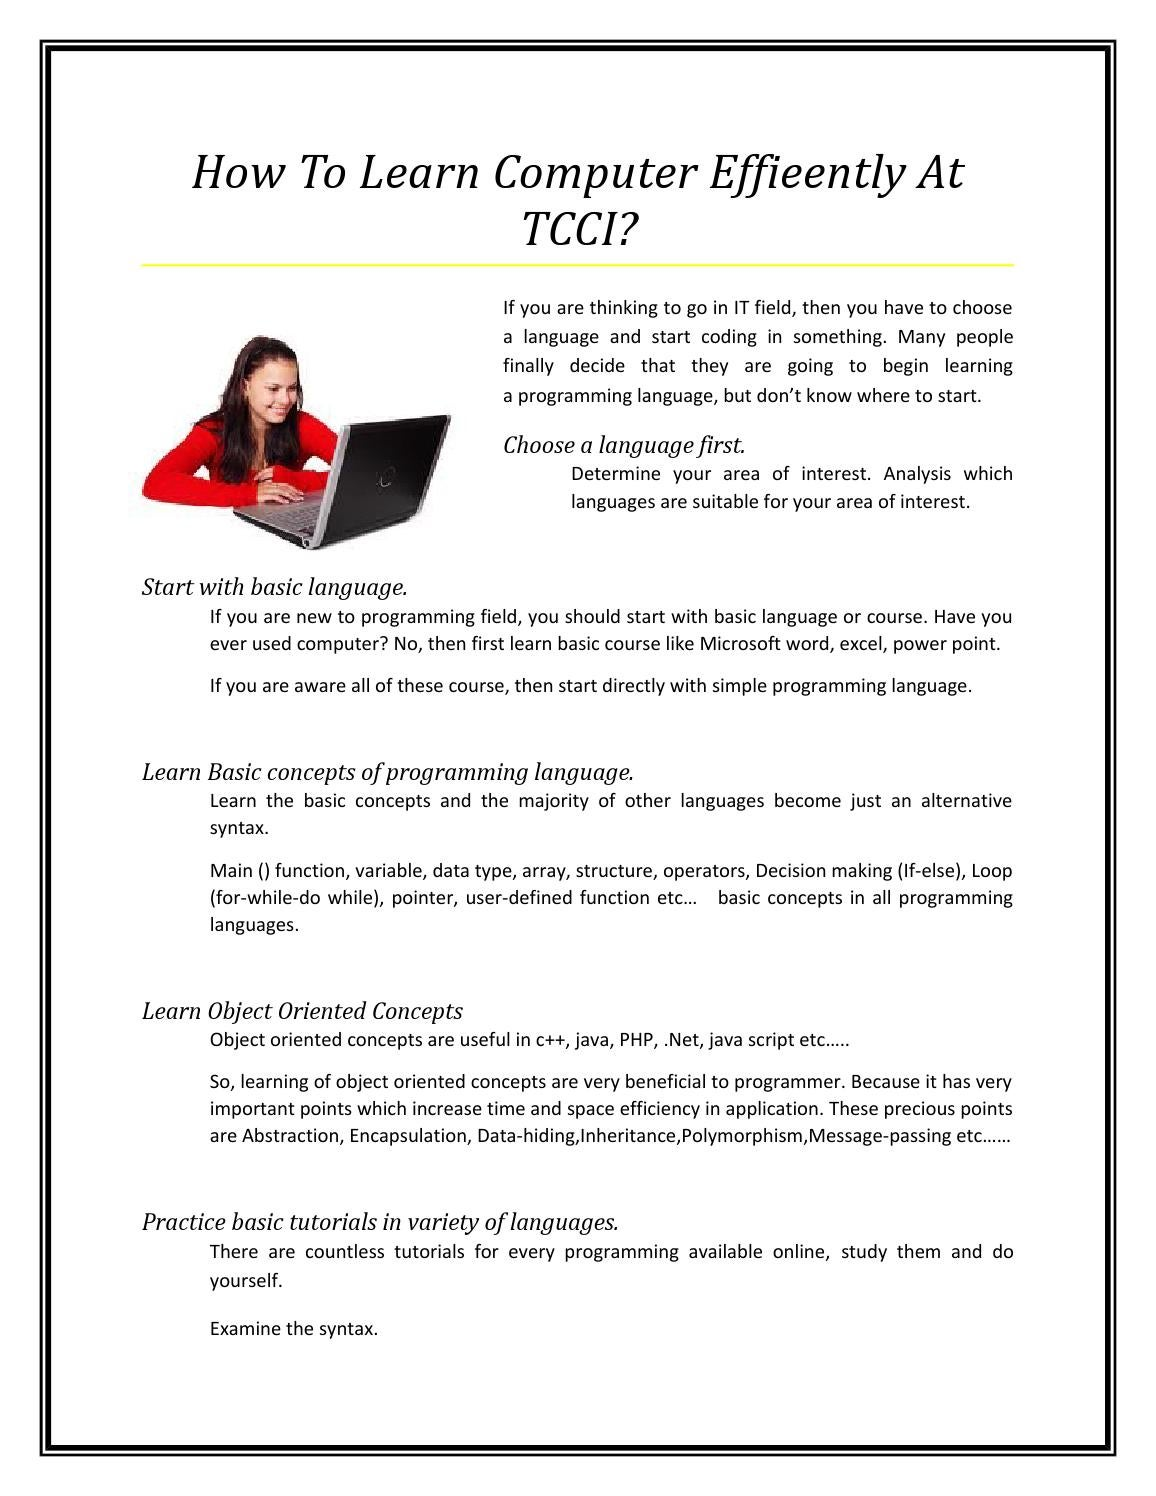 How to learn computer effieently at tcci by Rosario Riley